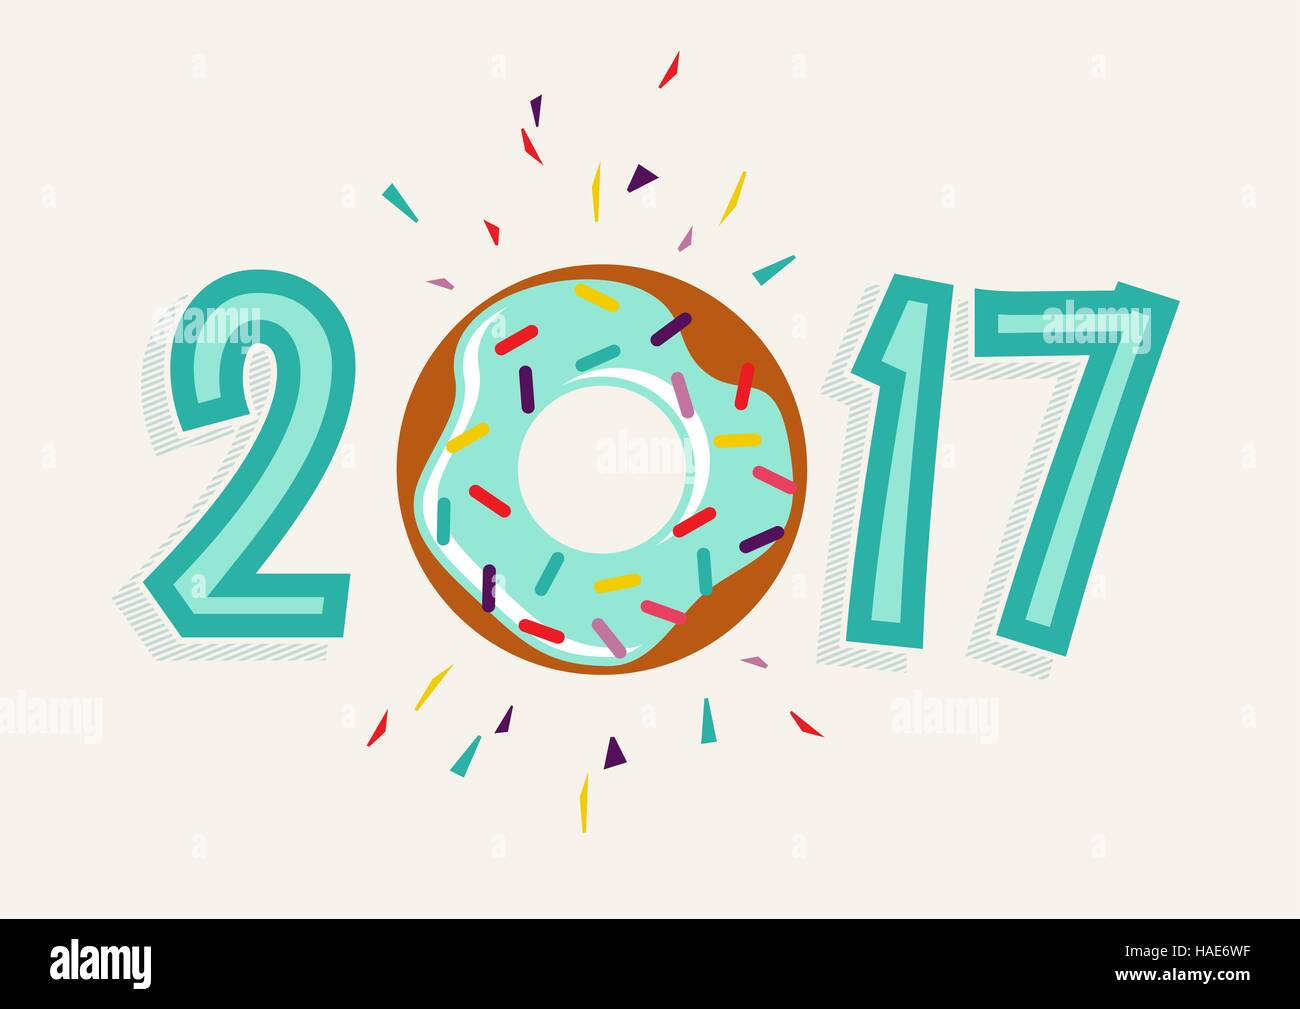 happy new year 2017 fun typography design with sweet donut cake element as number eps10 vector